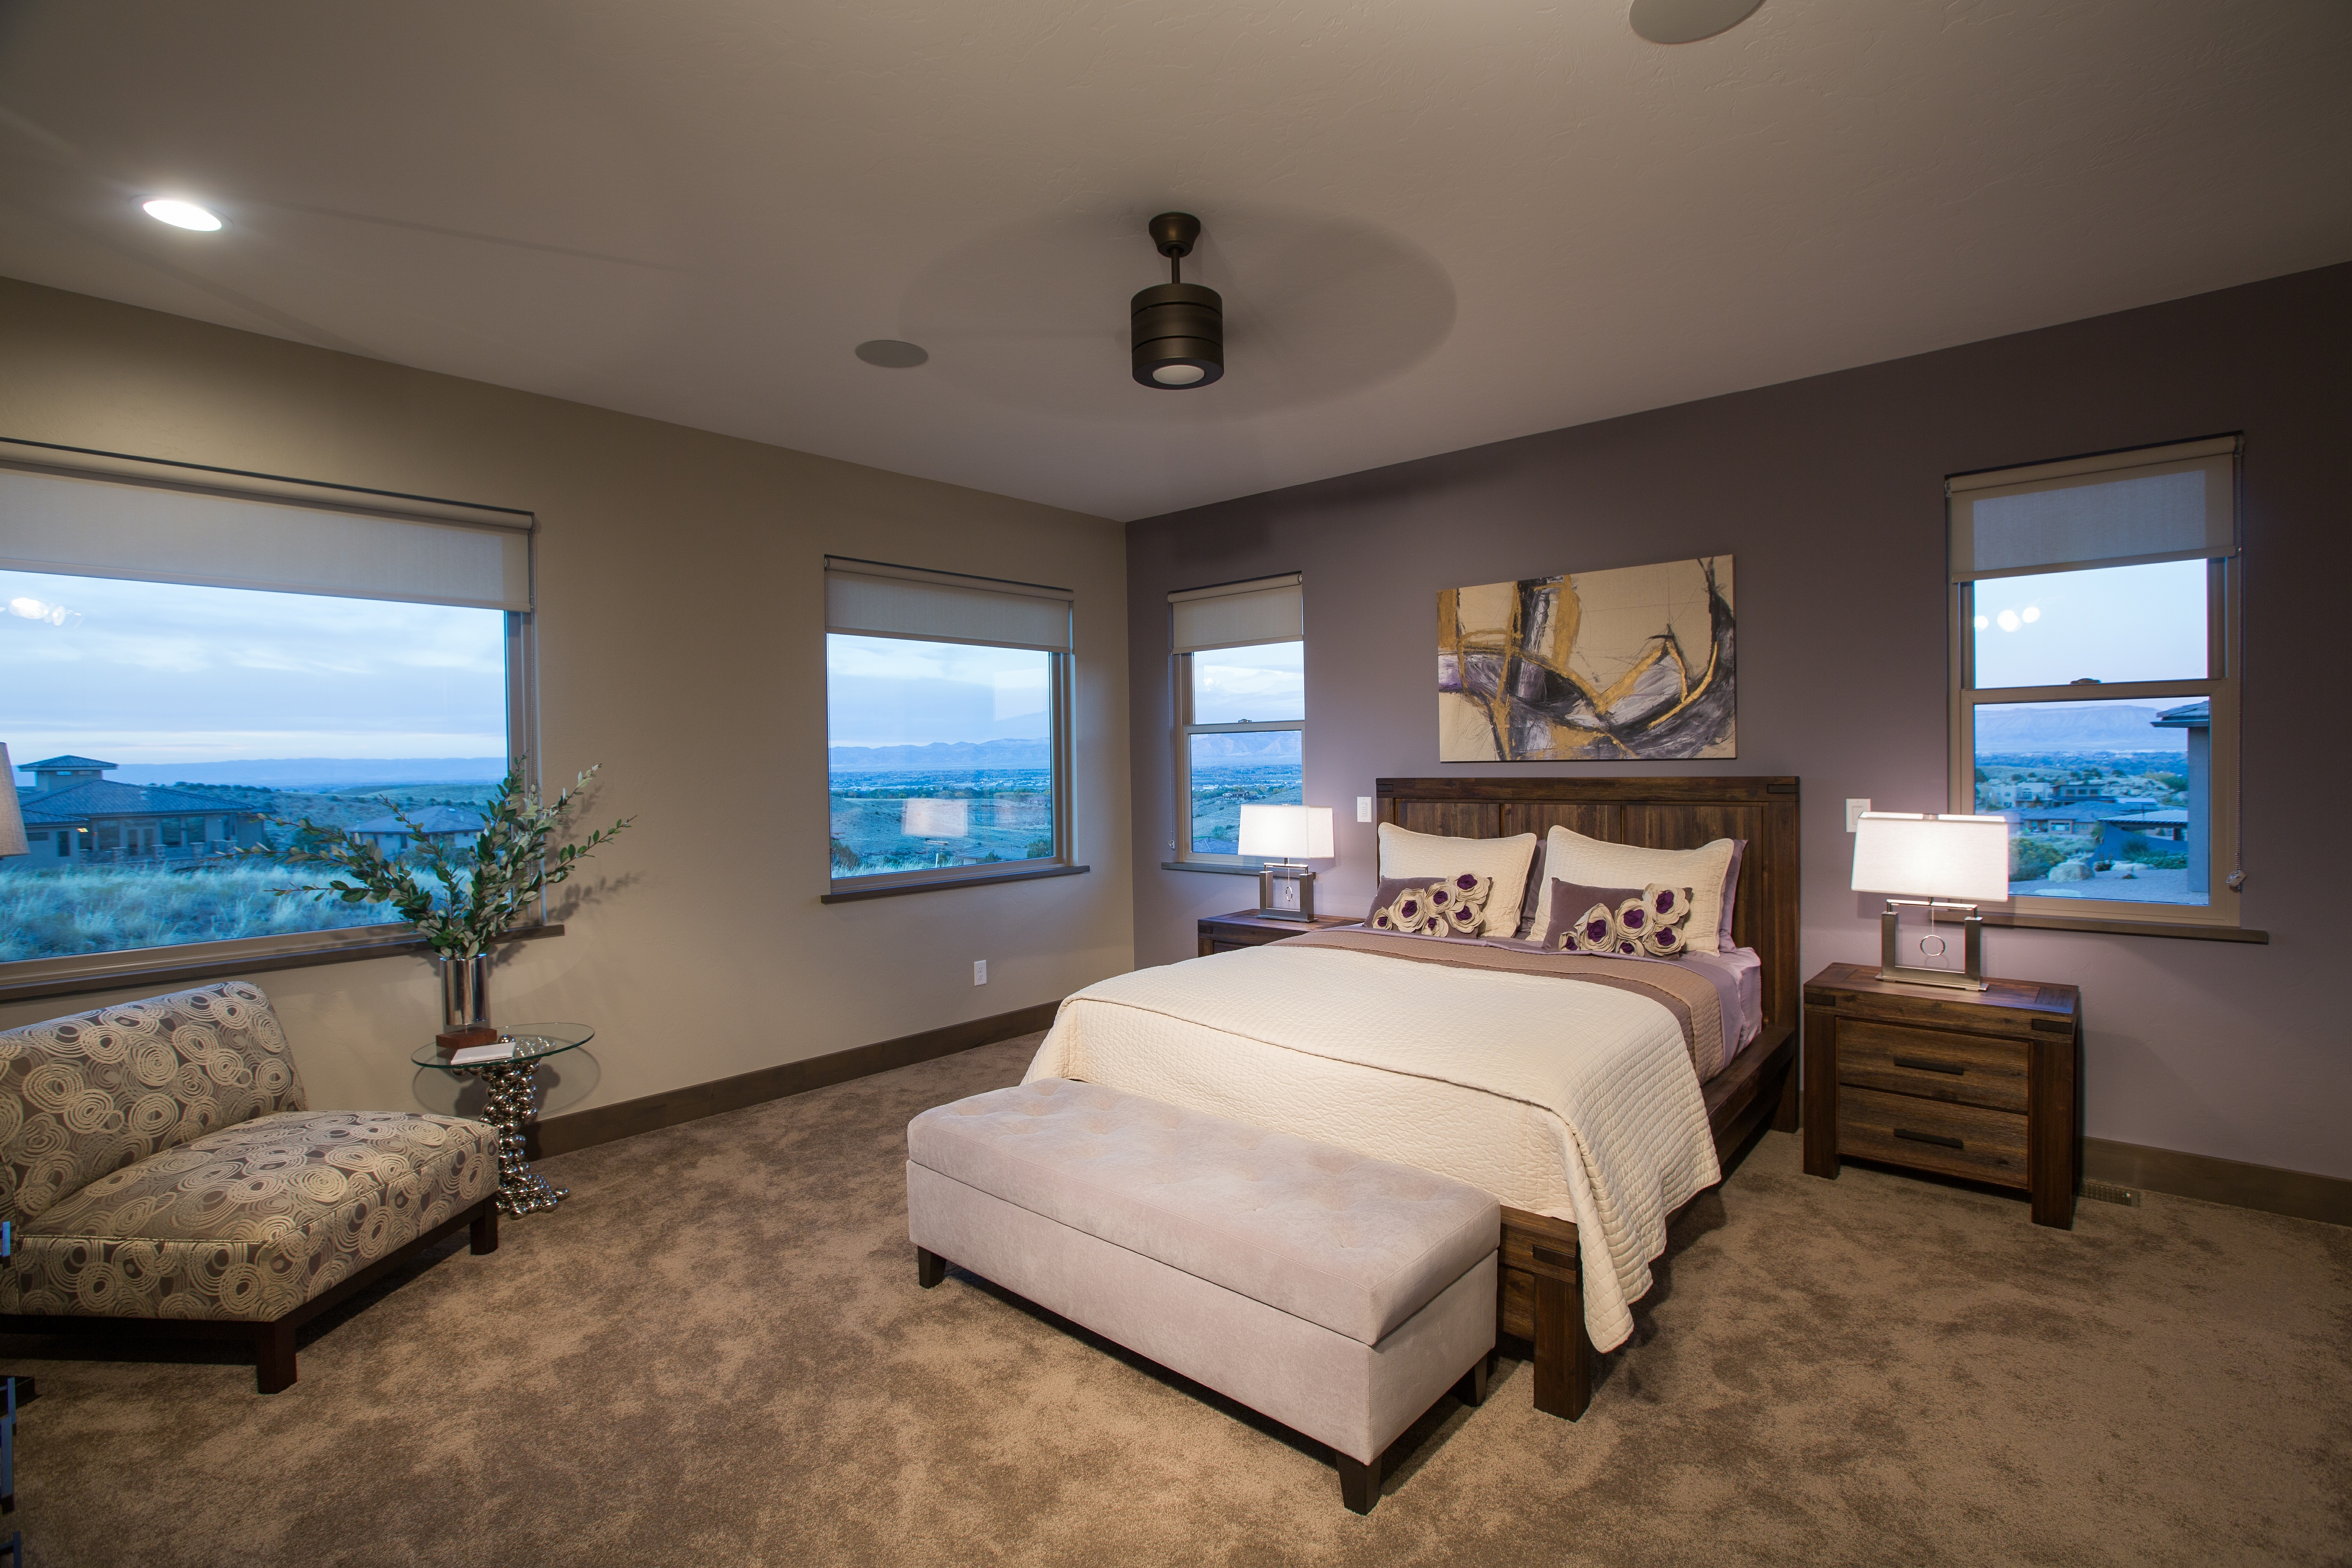 Redlands Mesa Residential Project